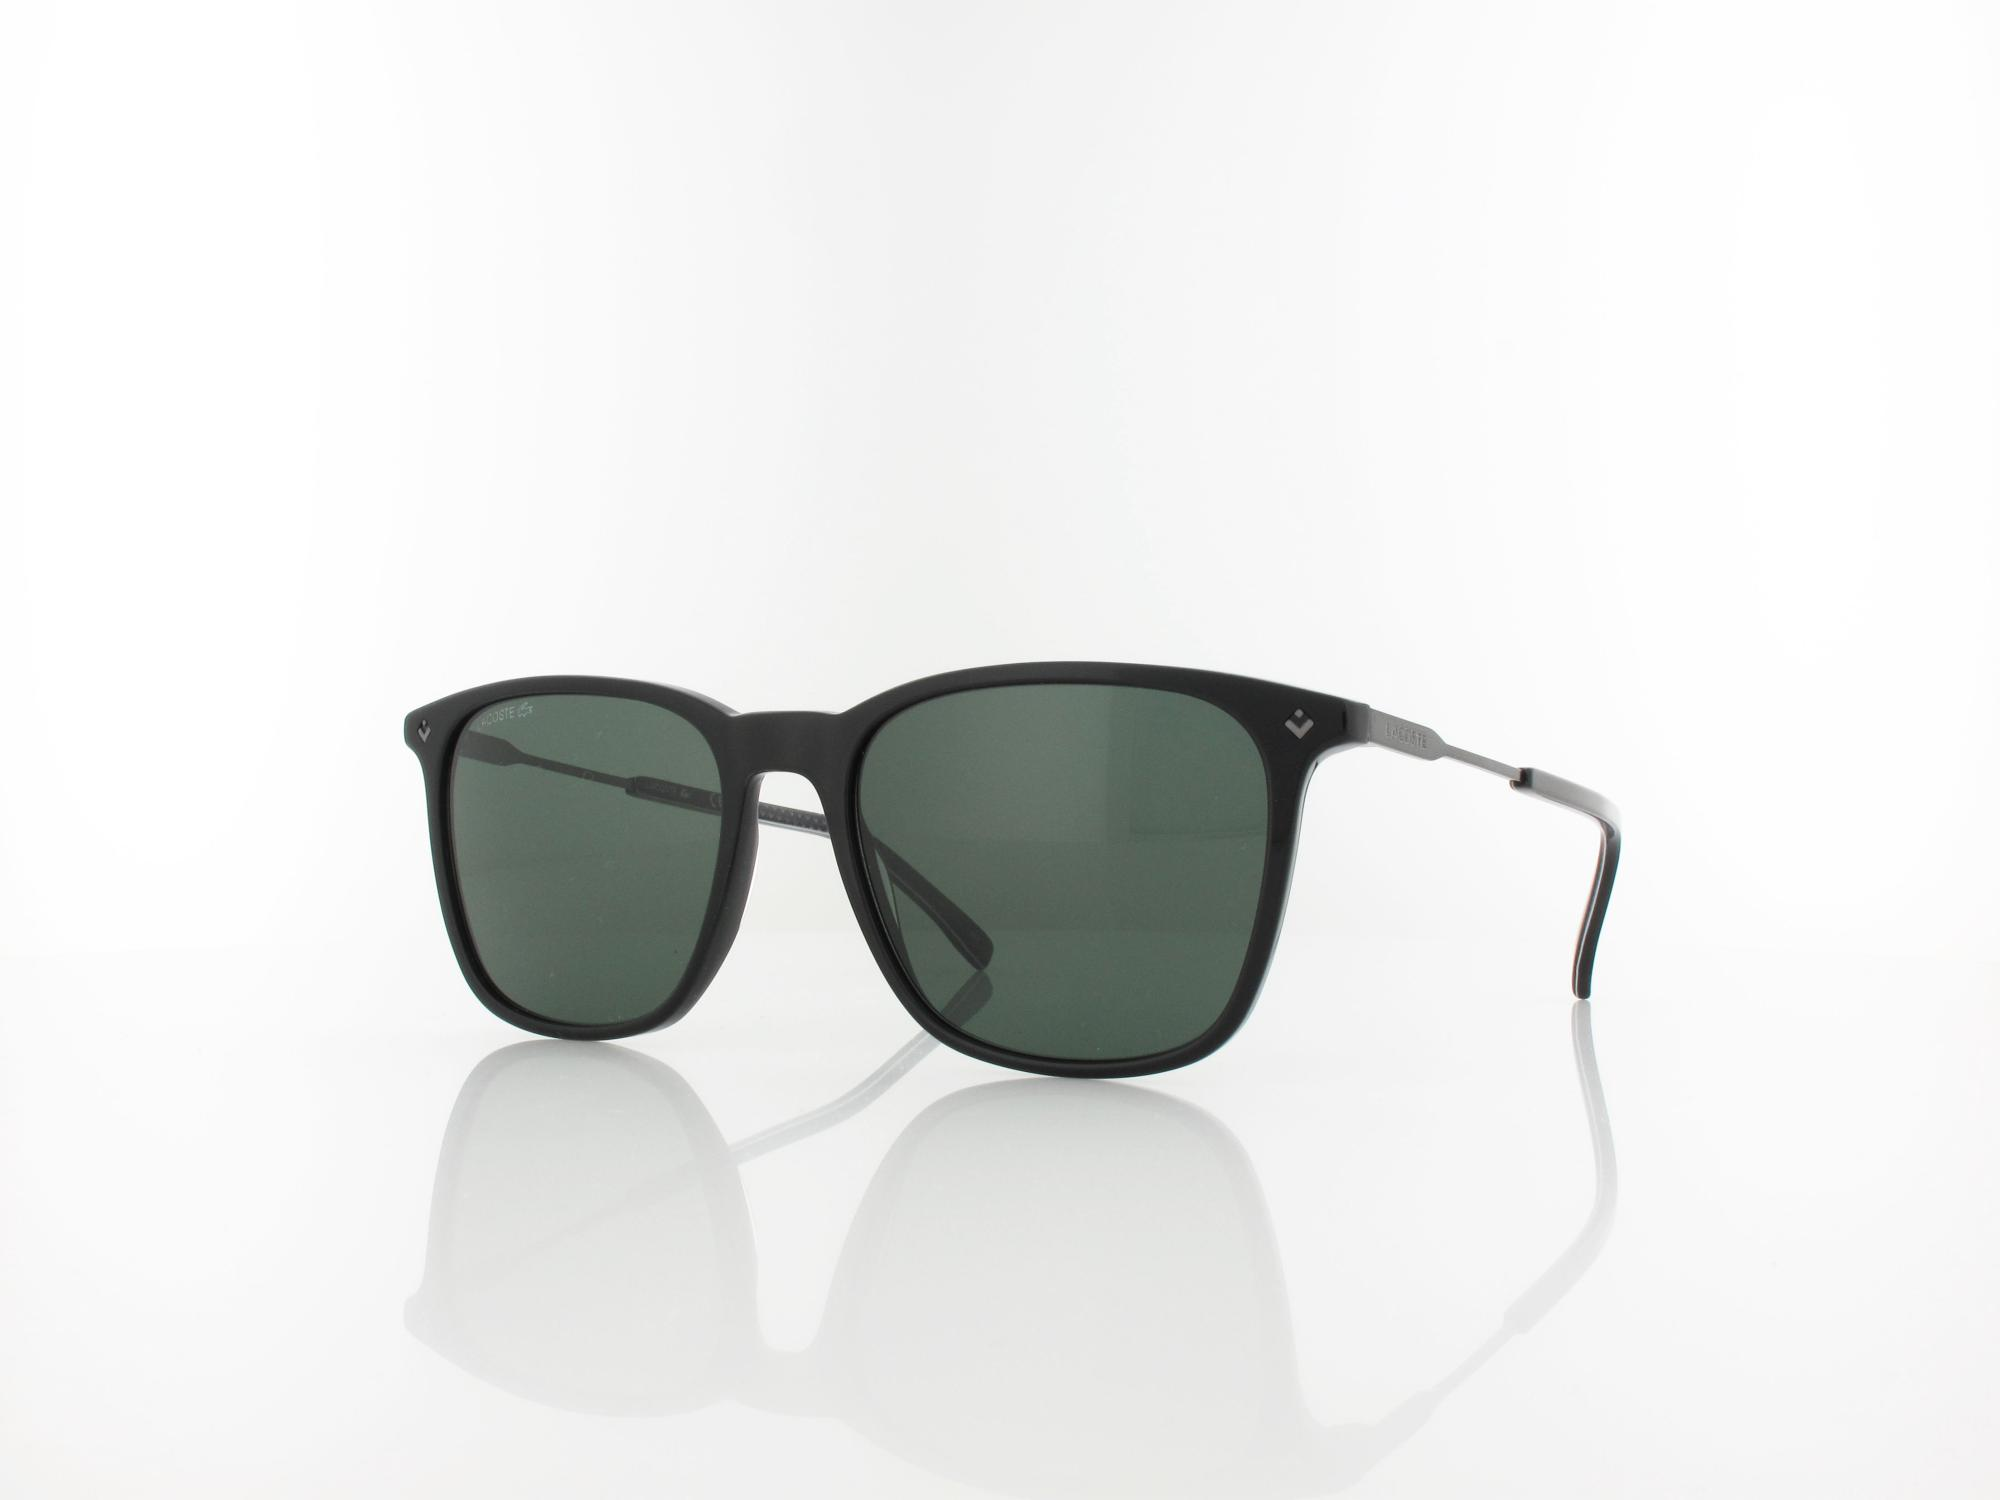 Lacoste | L870S 001 55 | shiny black / green